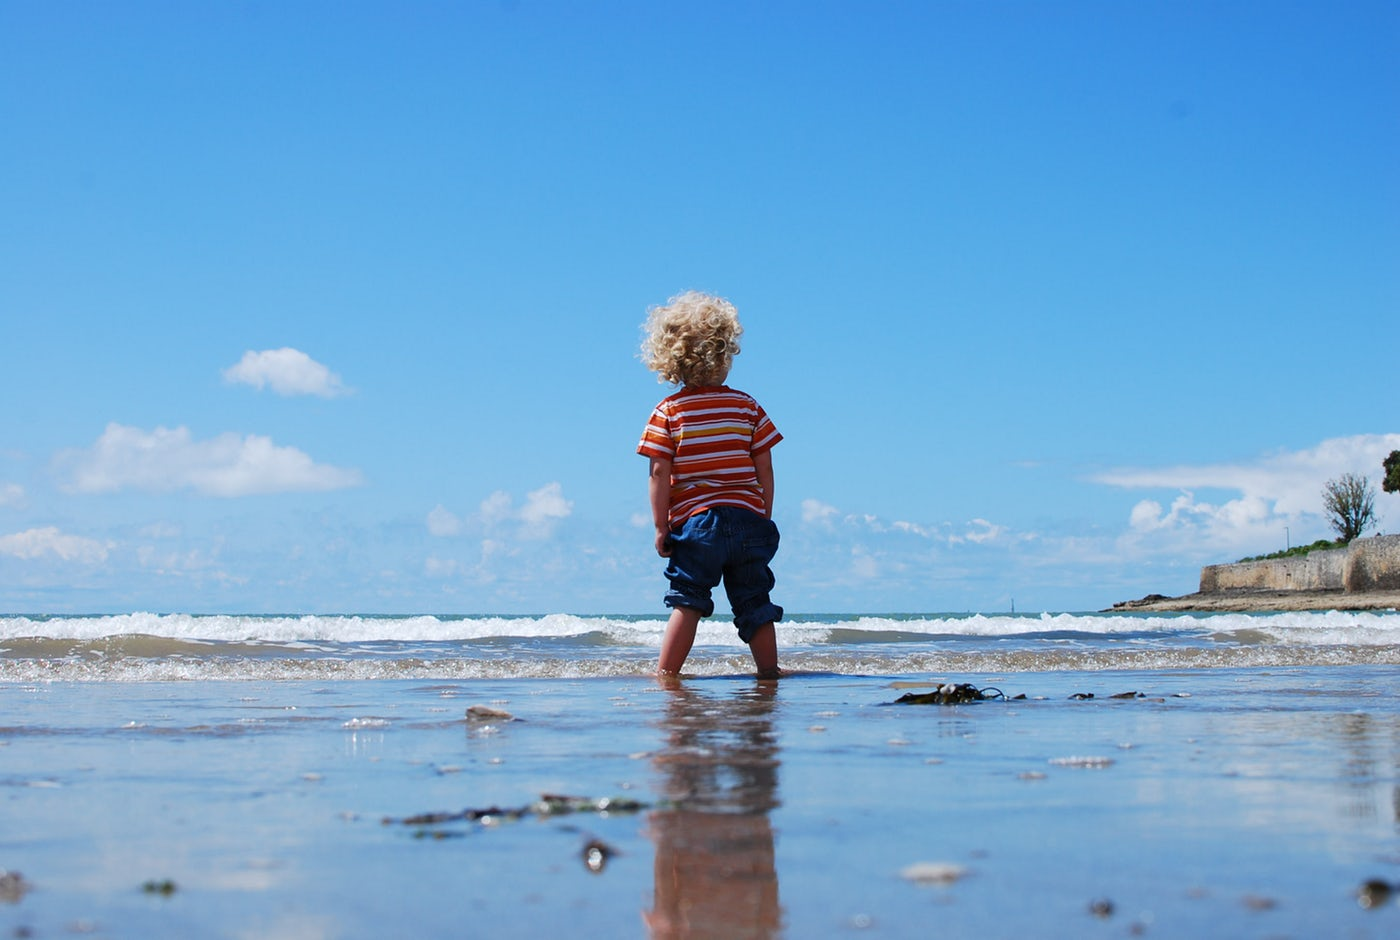 5 Things about Confidence I Learned from a 1 Year Old